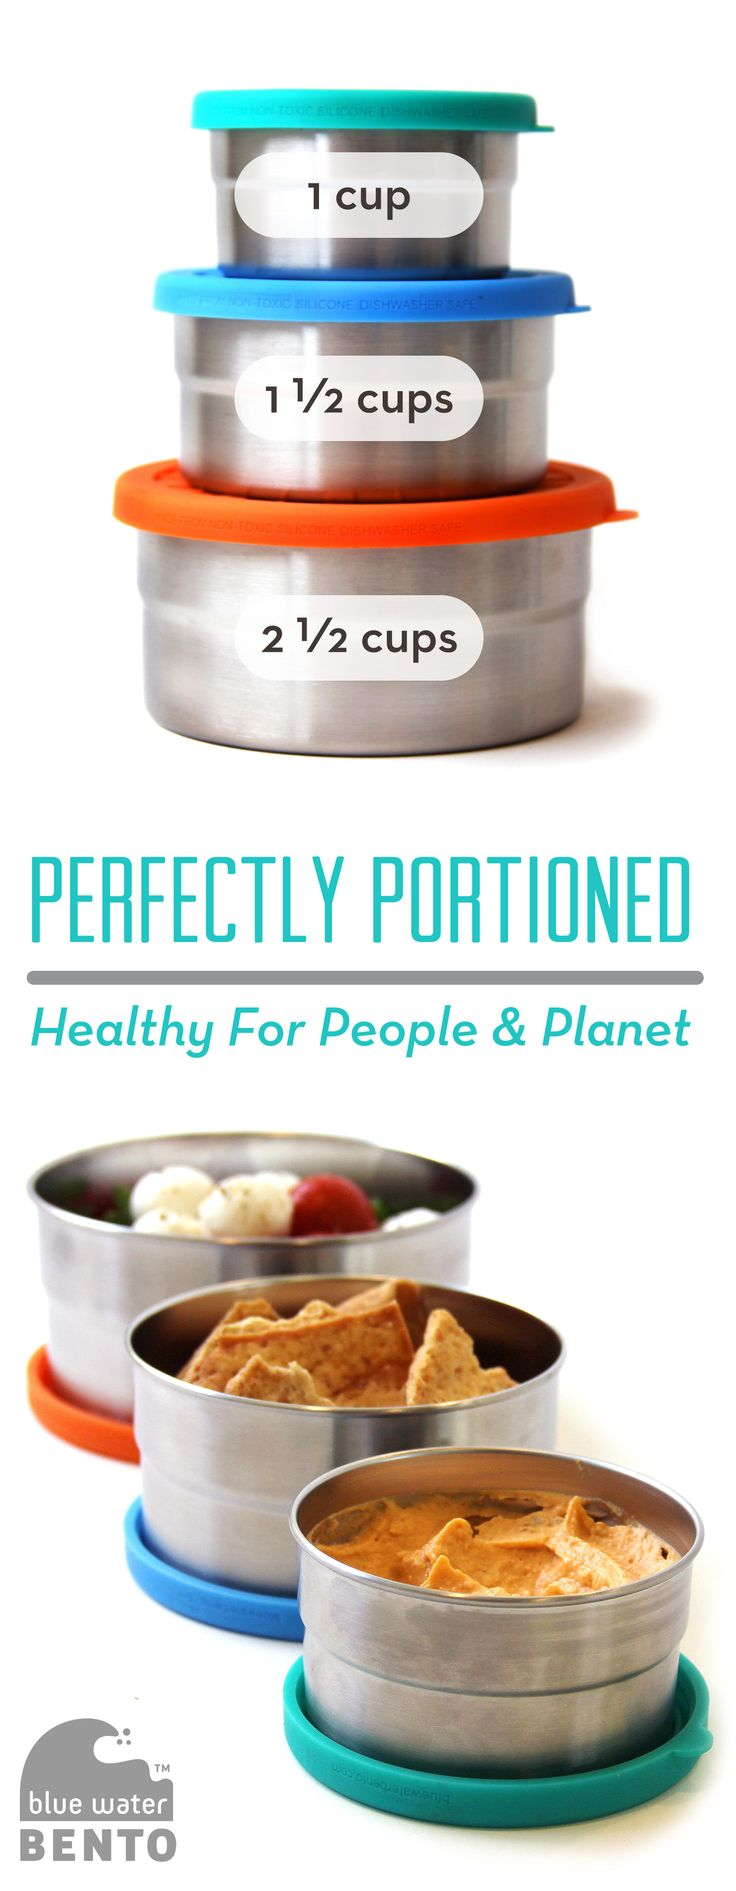 17 best images about healthy lunches for work on pinterest healthy meals bento and food prep. Black Bedroom Furniture Sets. Home Design Ideas